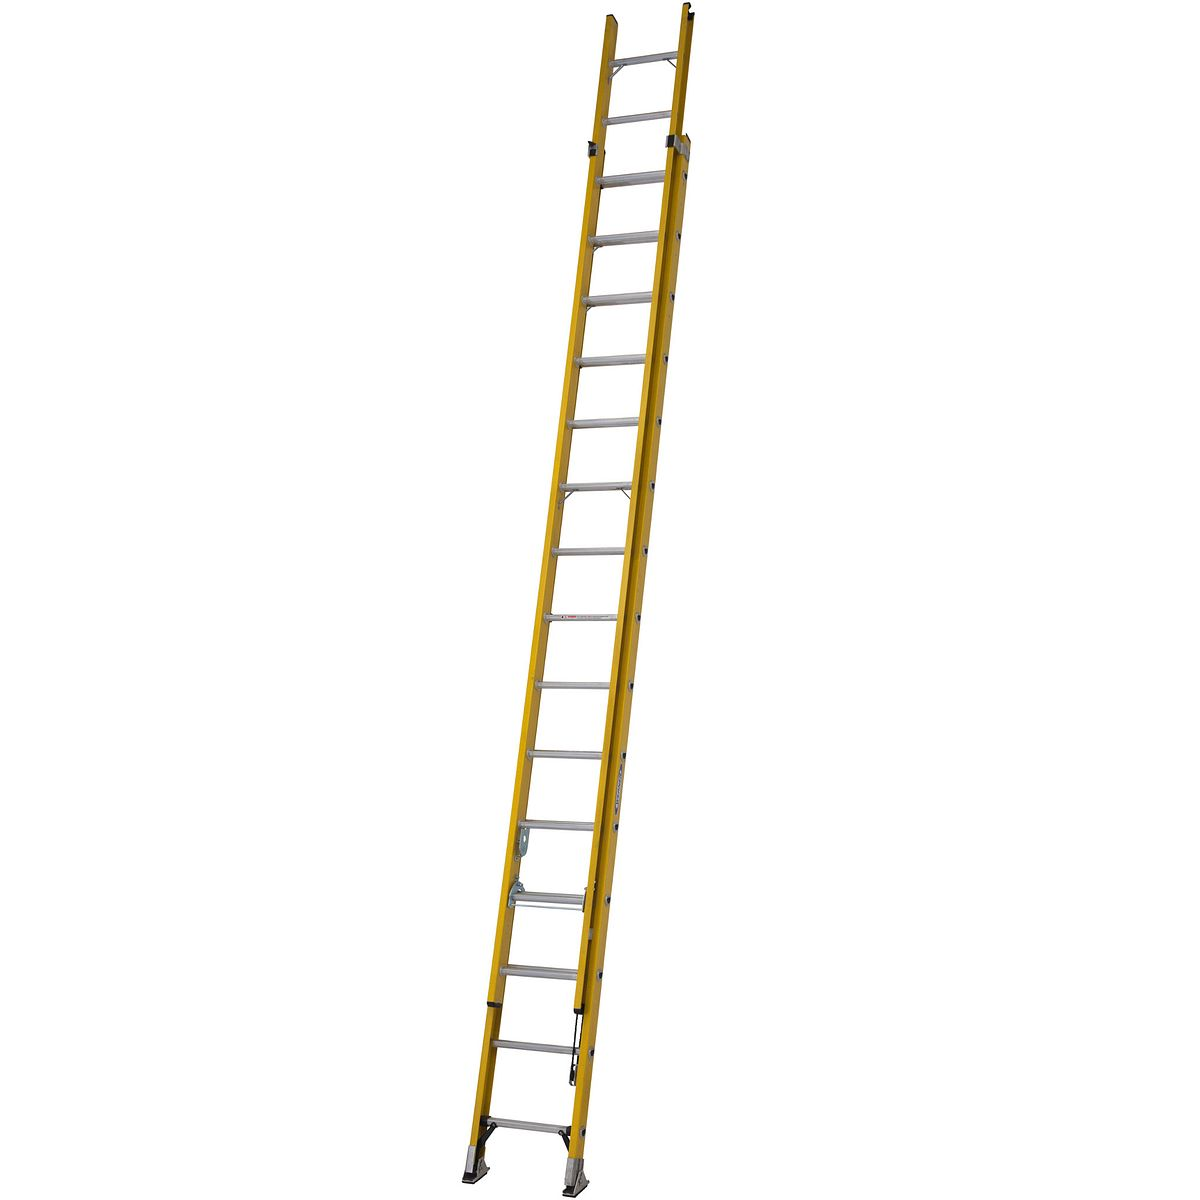 52781500 | Extension Ladders | Youngman UK